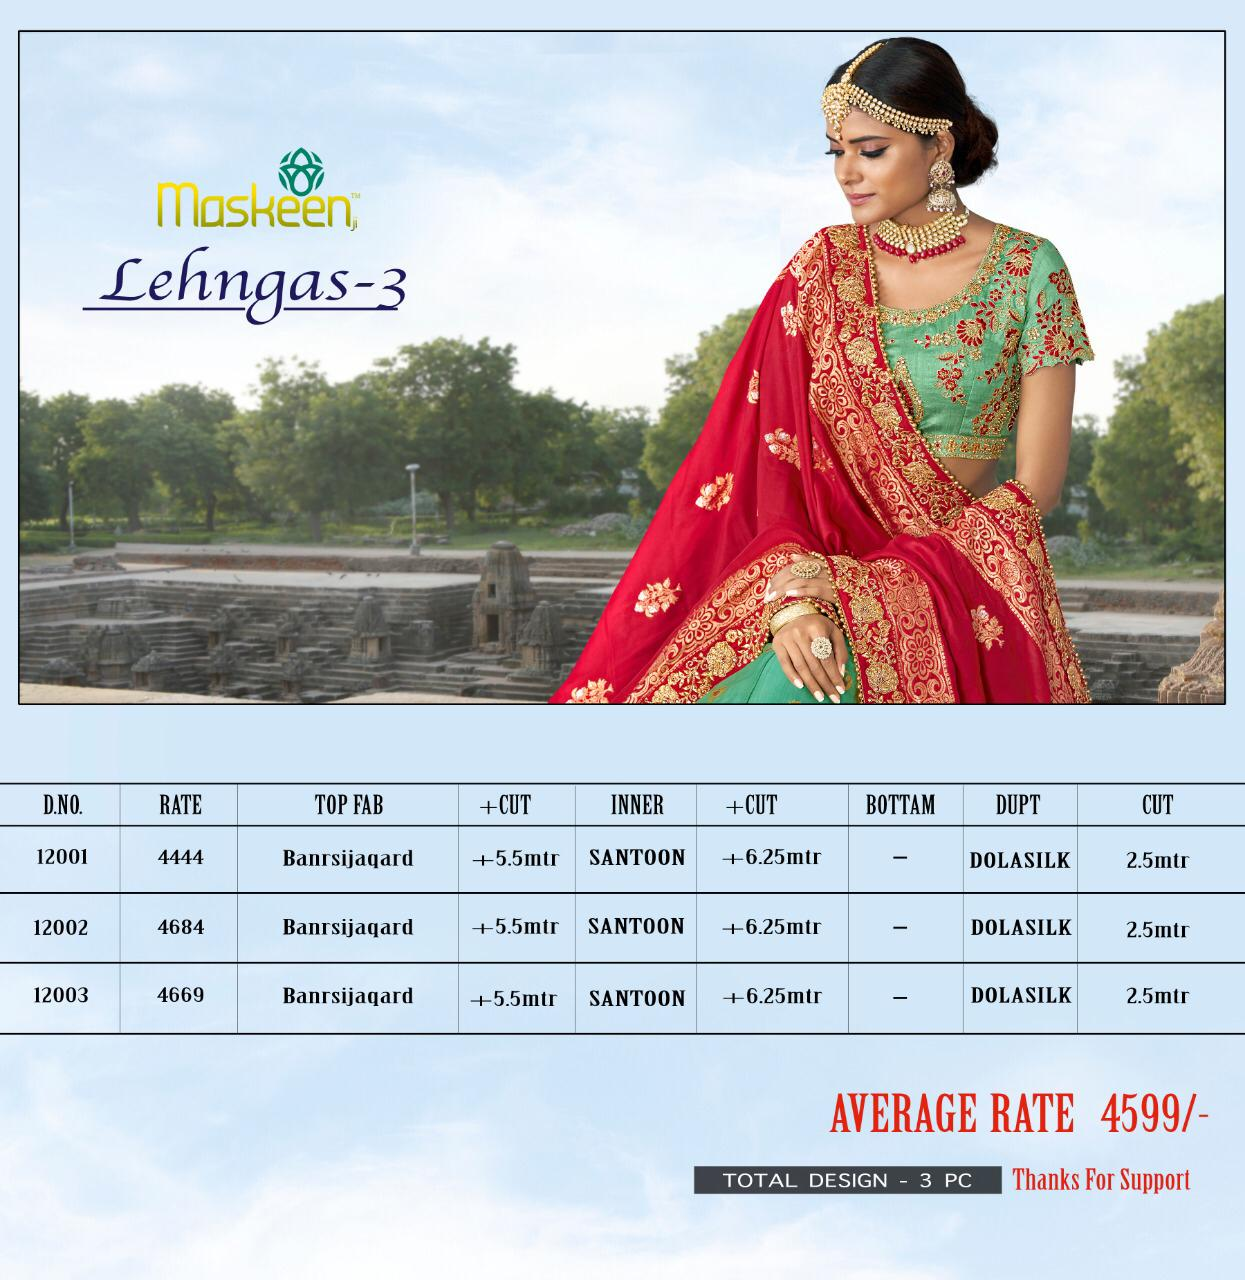 e021d7e638 LOOK FOR CATALOGUES OF CURRENT DATE OR 15 DAYS PRIOR TO THE CURRENT DATE,  AS STOCK UPDATE FOR EVERY CATALOGUE IS NOT POSSIBLE ON THE WEBSITE.